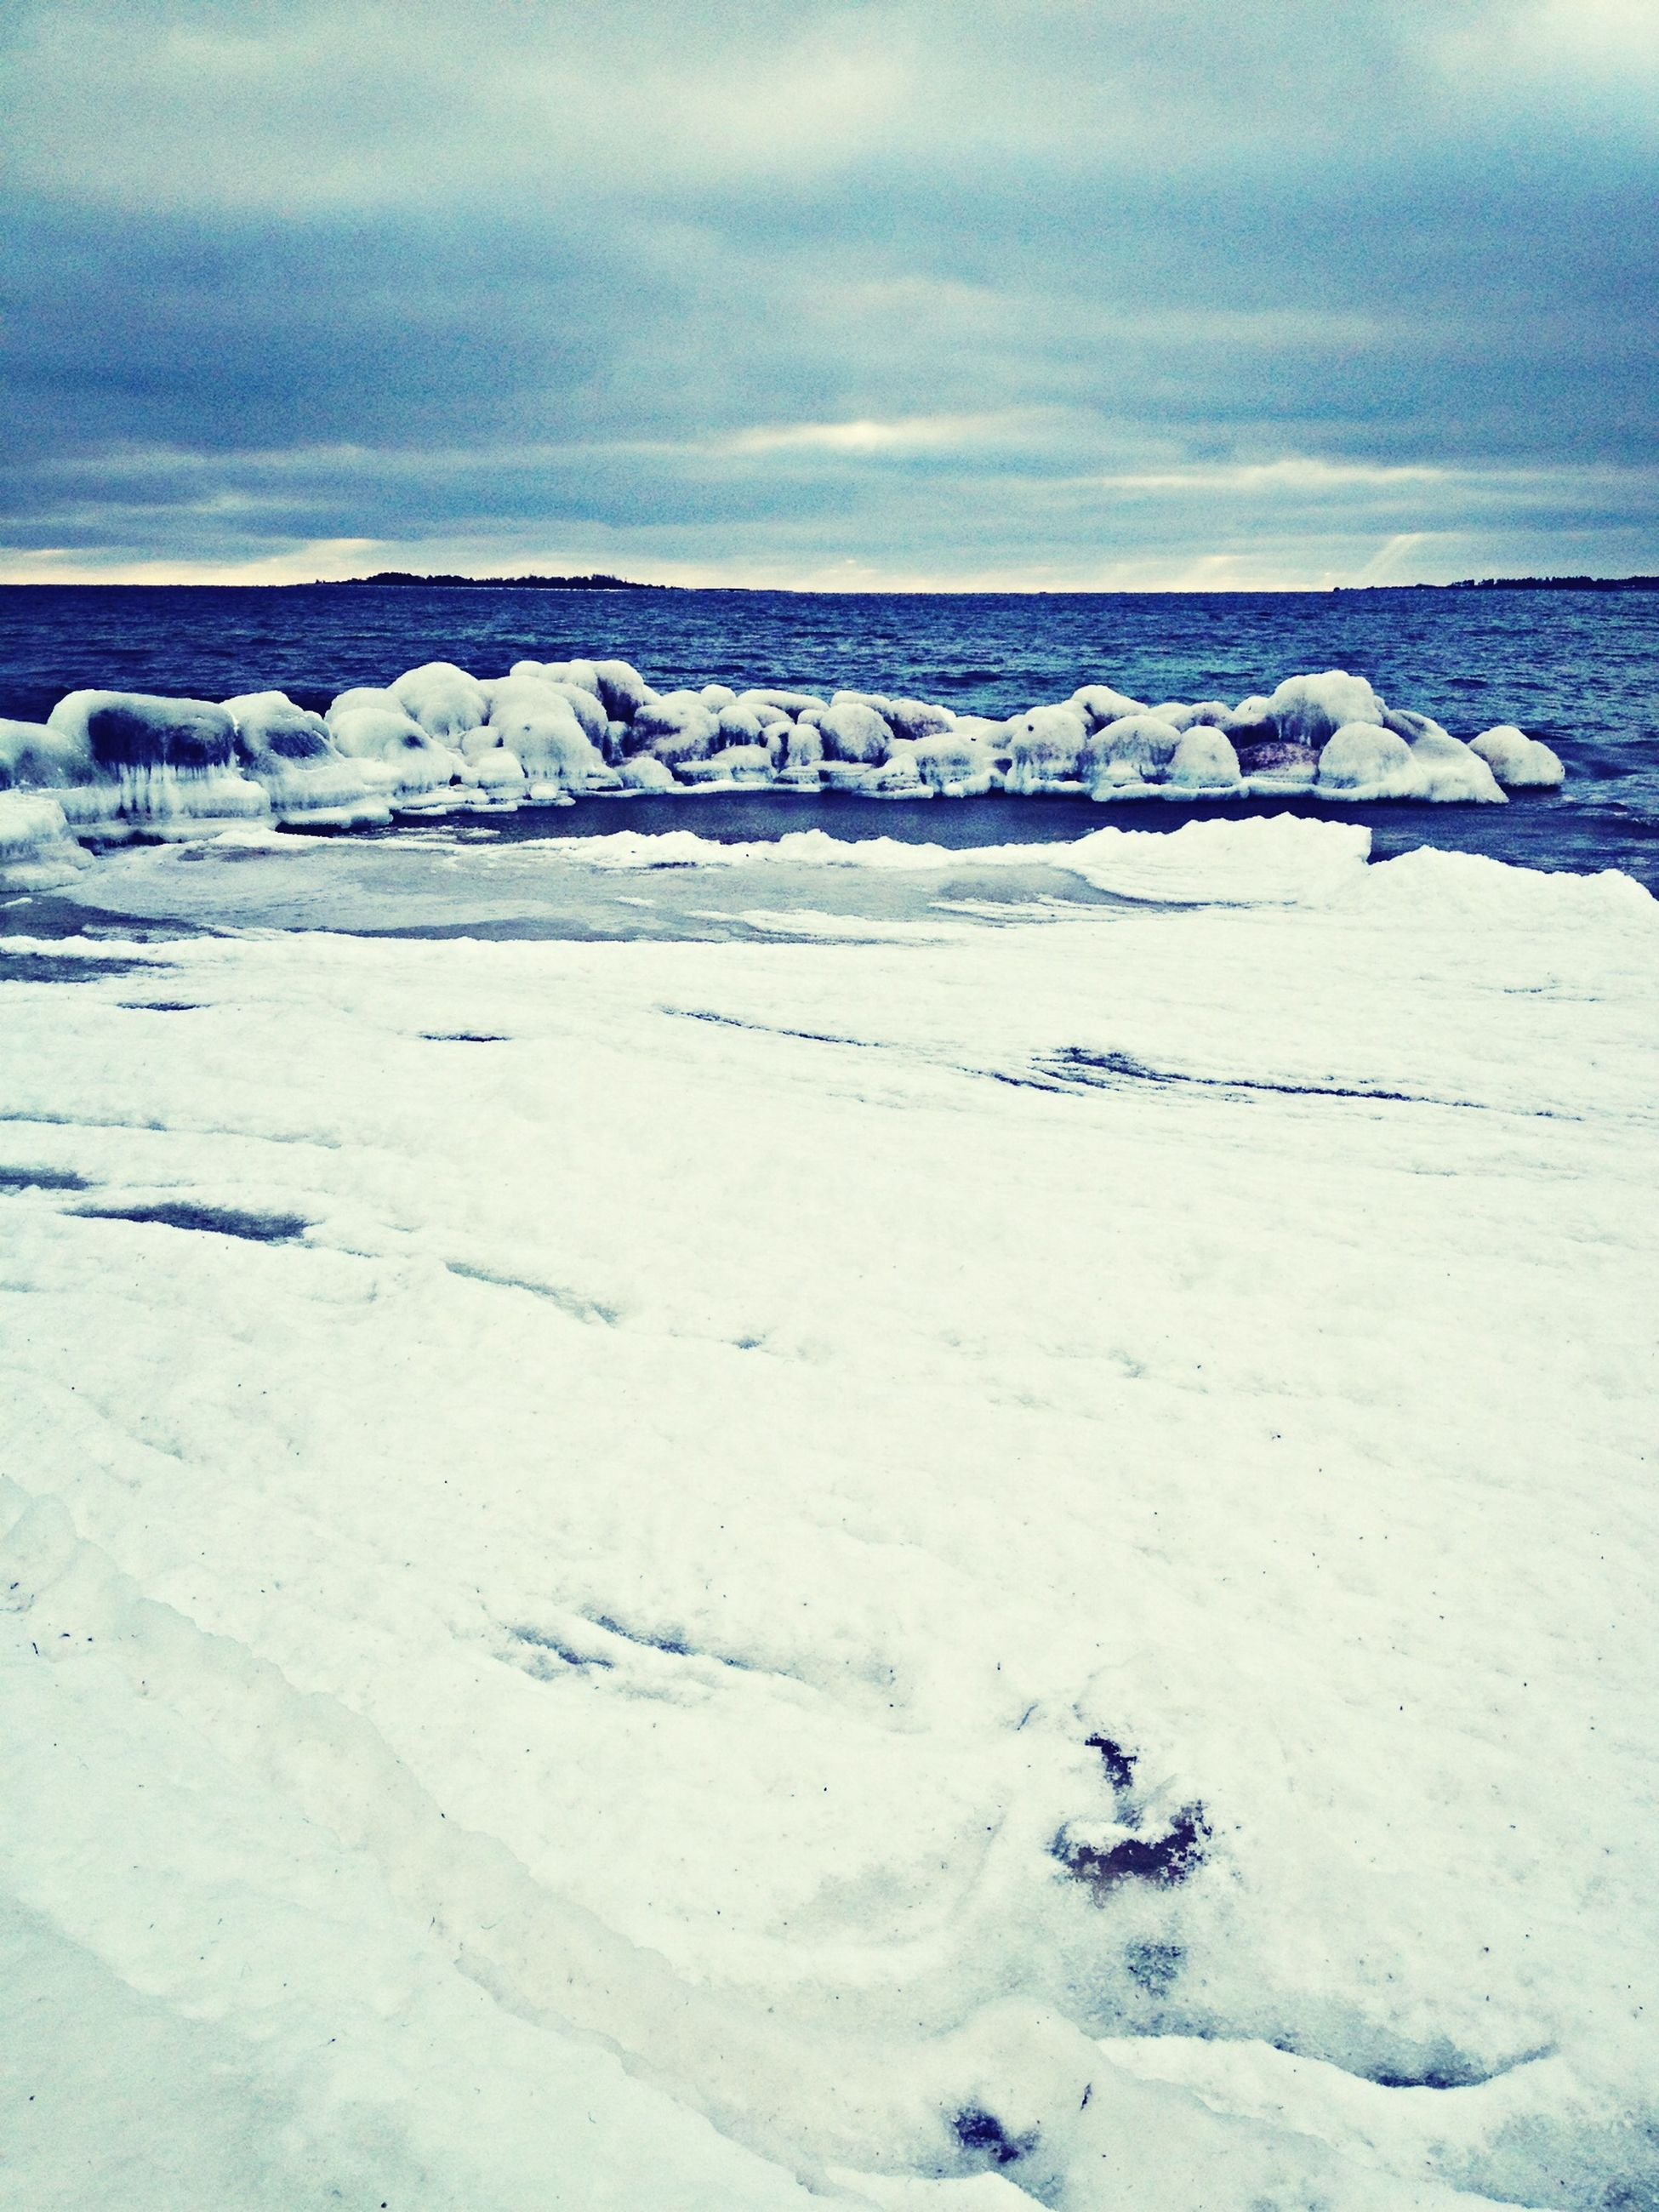 winter, snow, cold temperature, sky, weather, tranquility, nature, sea, tranquil scene, beauty in nature, scenics, cloud - sky, beach, water, horizon over water, sand, day, season, cloud, outdoors